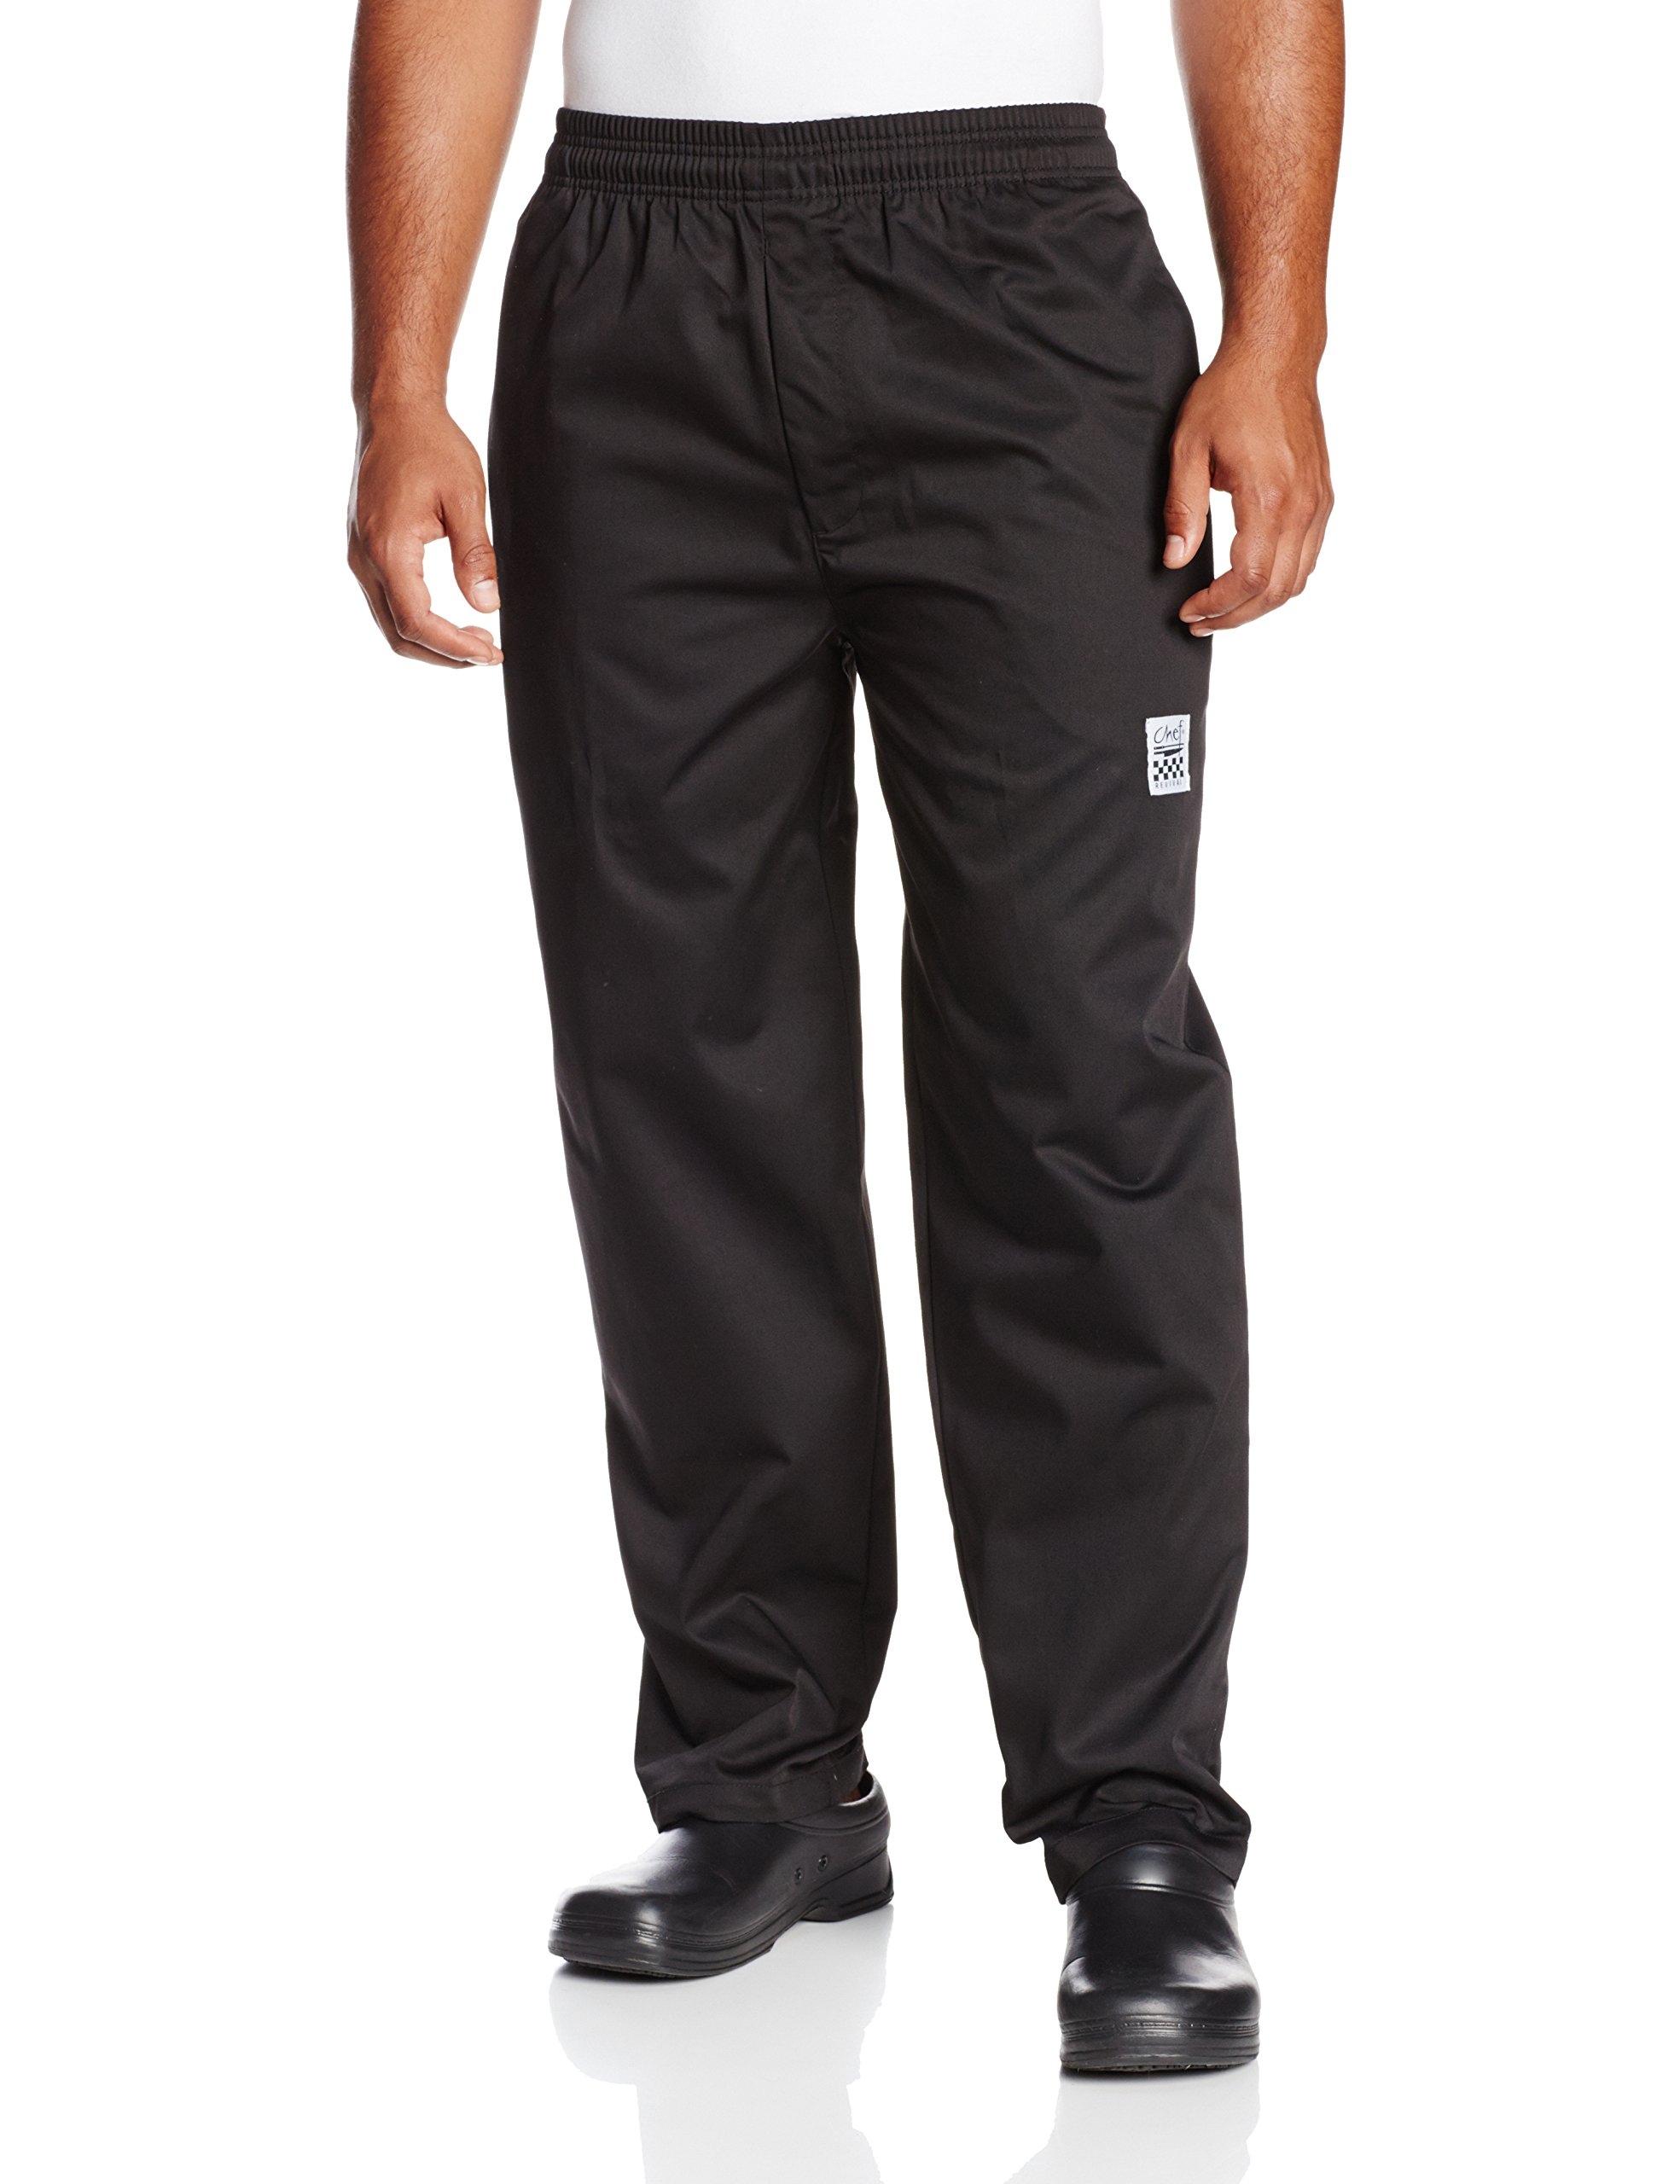 Chef Revival P002BK Poly Cotton Blend E-Z Fit Pant with 2 Side and 2 Rear Pockets, Medium, Black